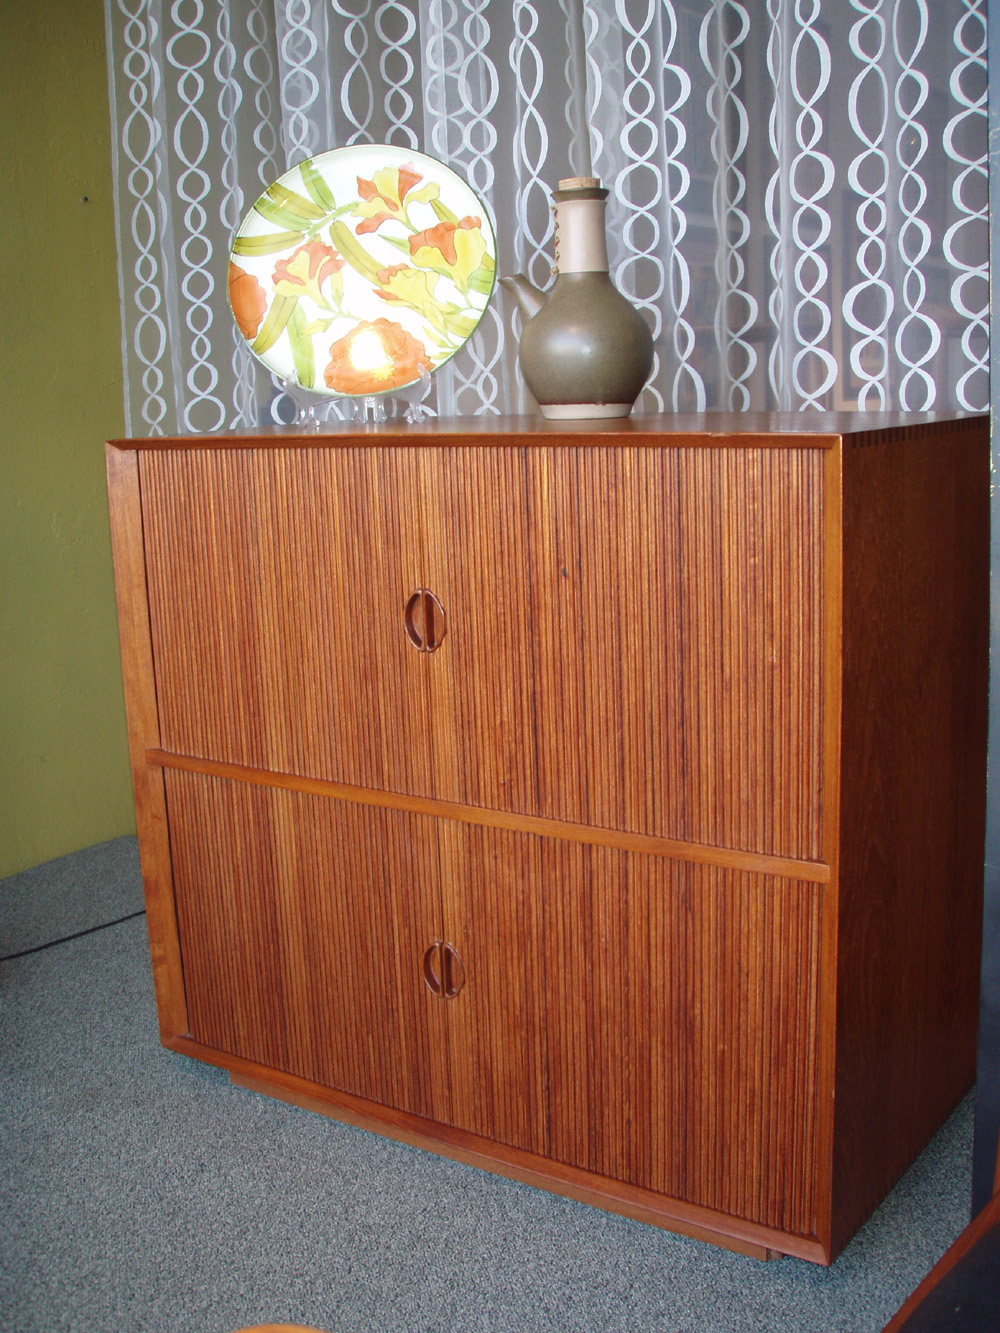 """Peter Hvidt & Molgarrd-Nielsen Teak Cabinet;Solid teak with visible dovetailed joints to cabinet frame. Solid teak pulls. Tambour doors conceal adjustable shelving.it is in excellent condition Purchased in 1961 from Illums Bolighus, Copenhagen. 36""""W x 19""""D x 34"""" H Price $3500.00"""